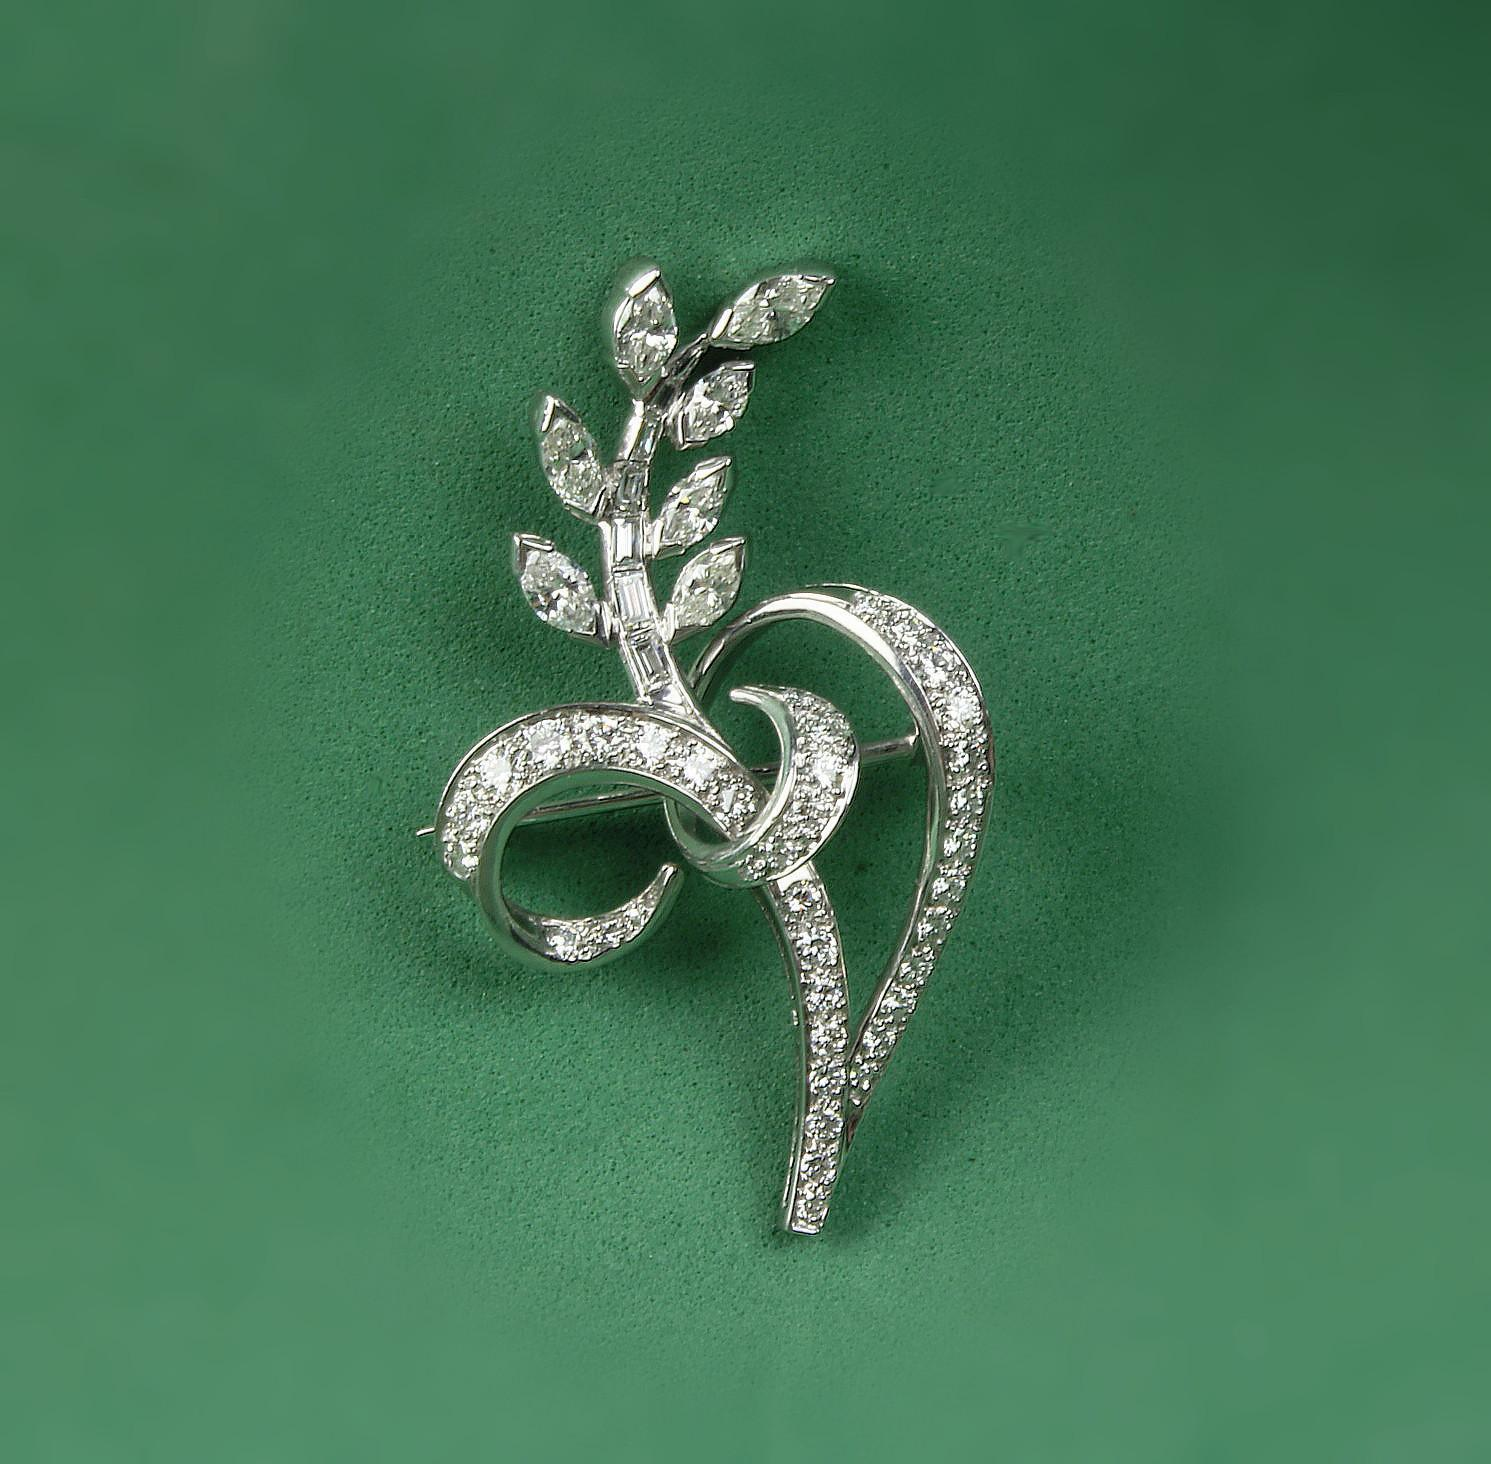 Platinum Brooch with 1.15 Carats of Diamonds